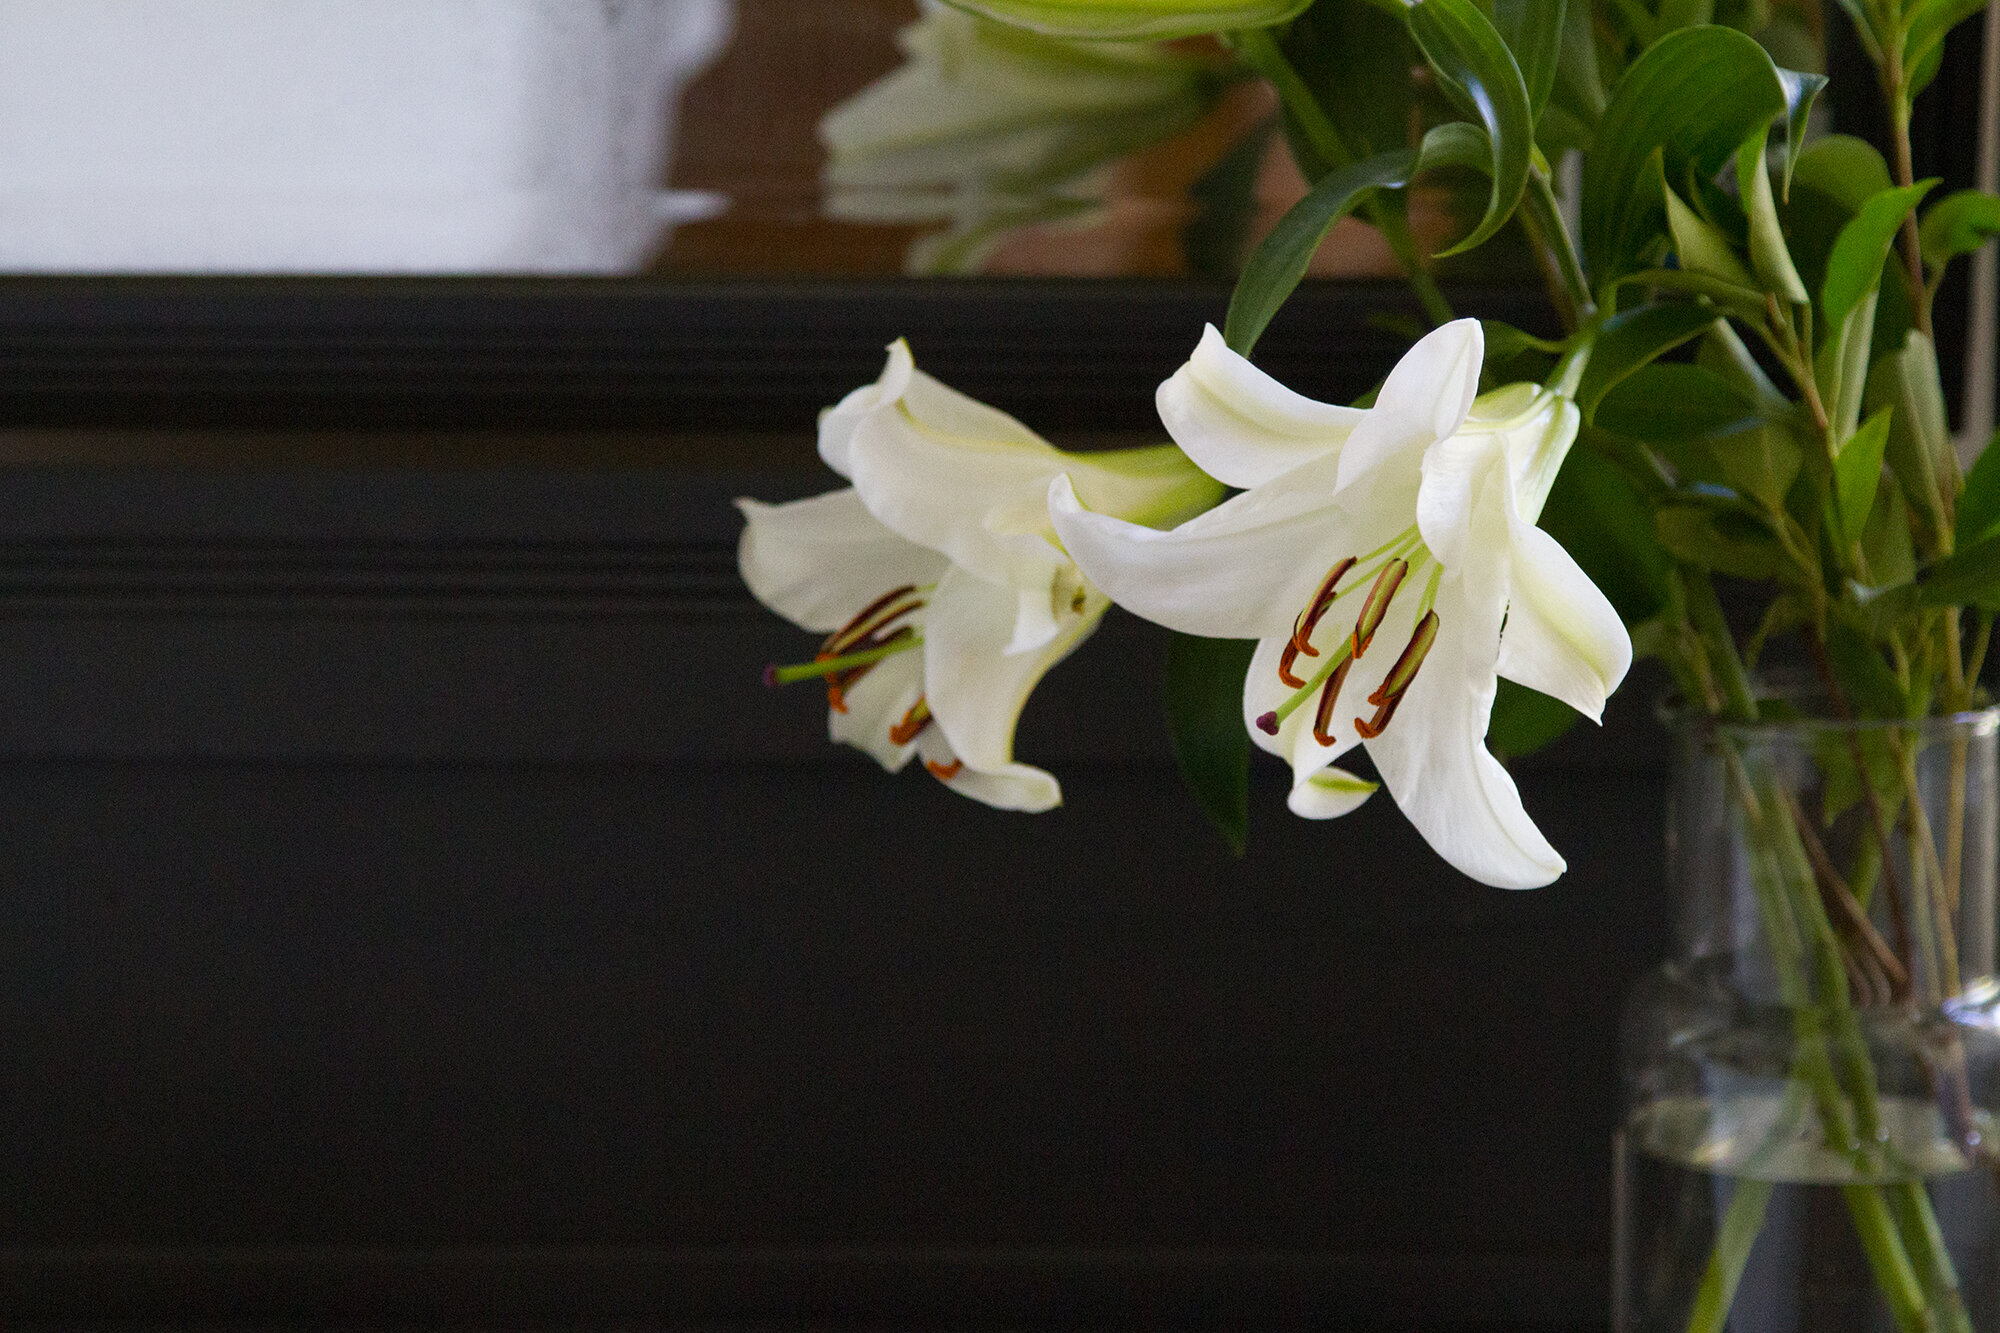 lilies_reading_my_tea_leaves_IMG_2285